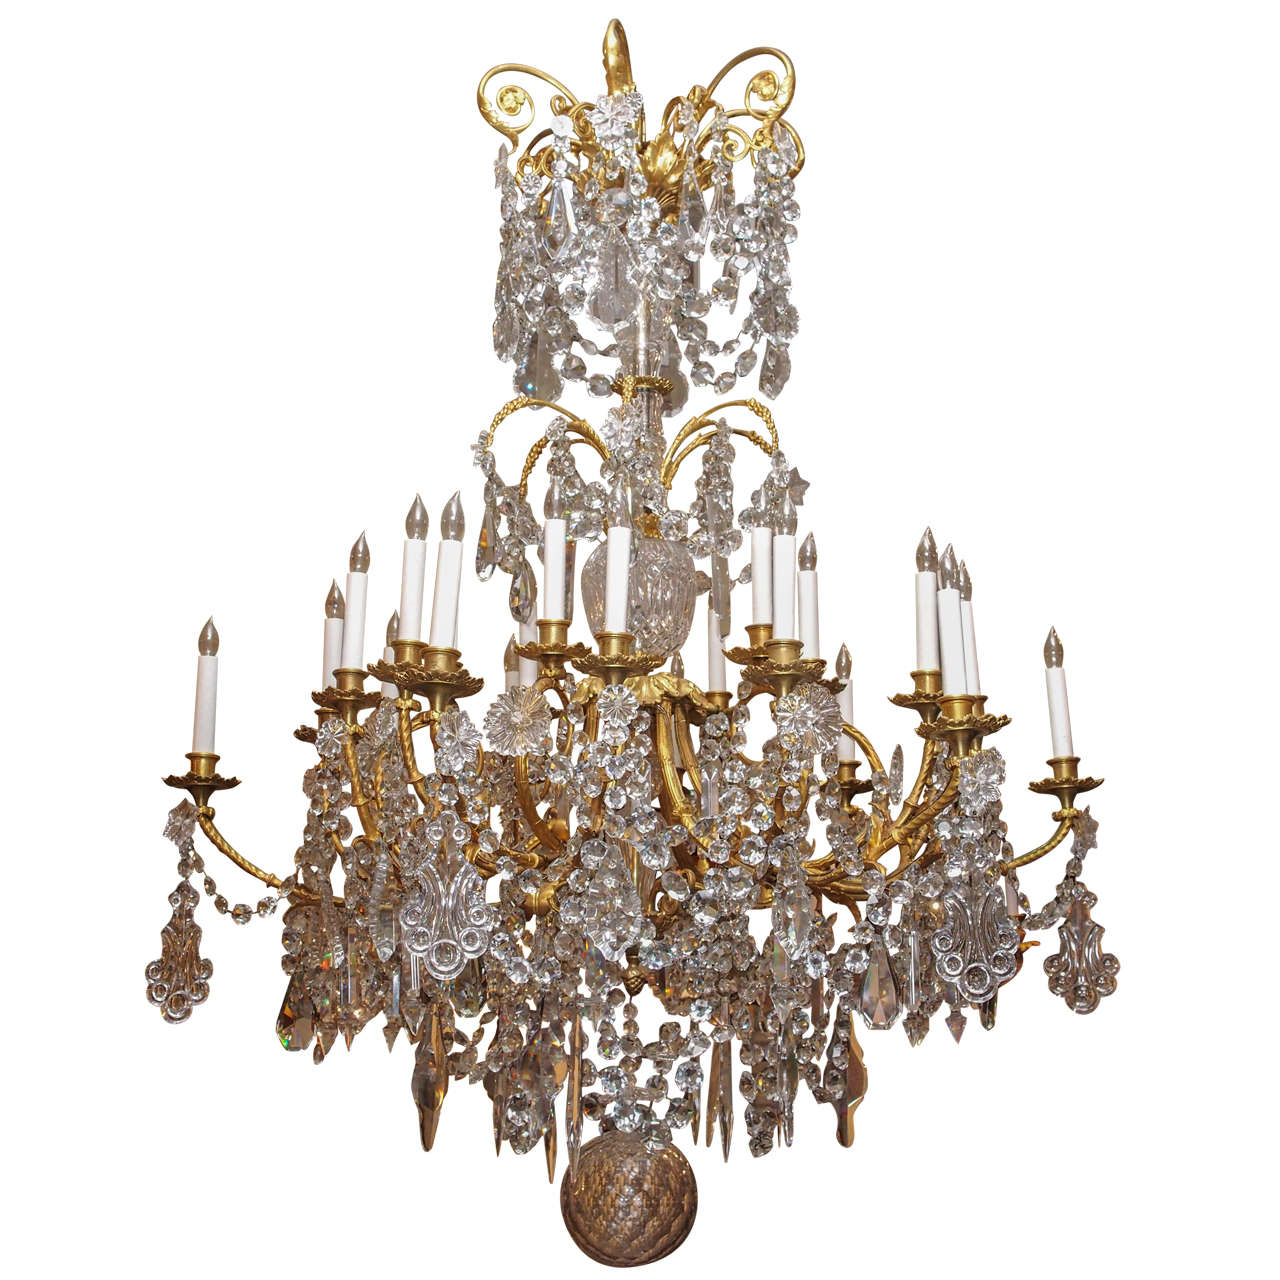 Antique French Baccarat Crystal and Ormolu Chandelier circa 1880s - Antique French Baccarat Crystal And Ormolu Chandelier Circa 1880s